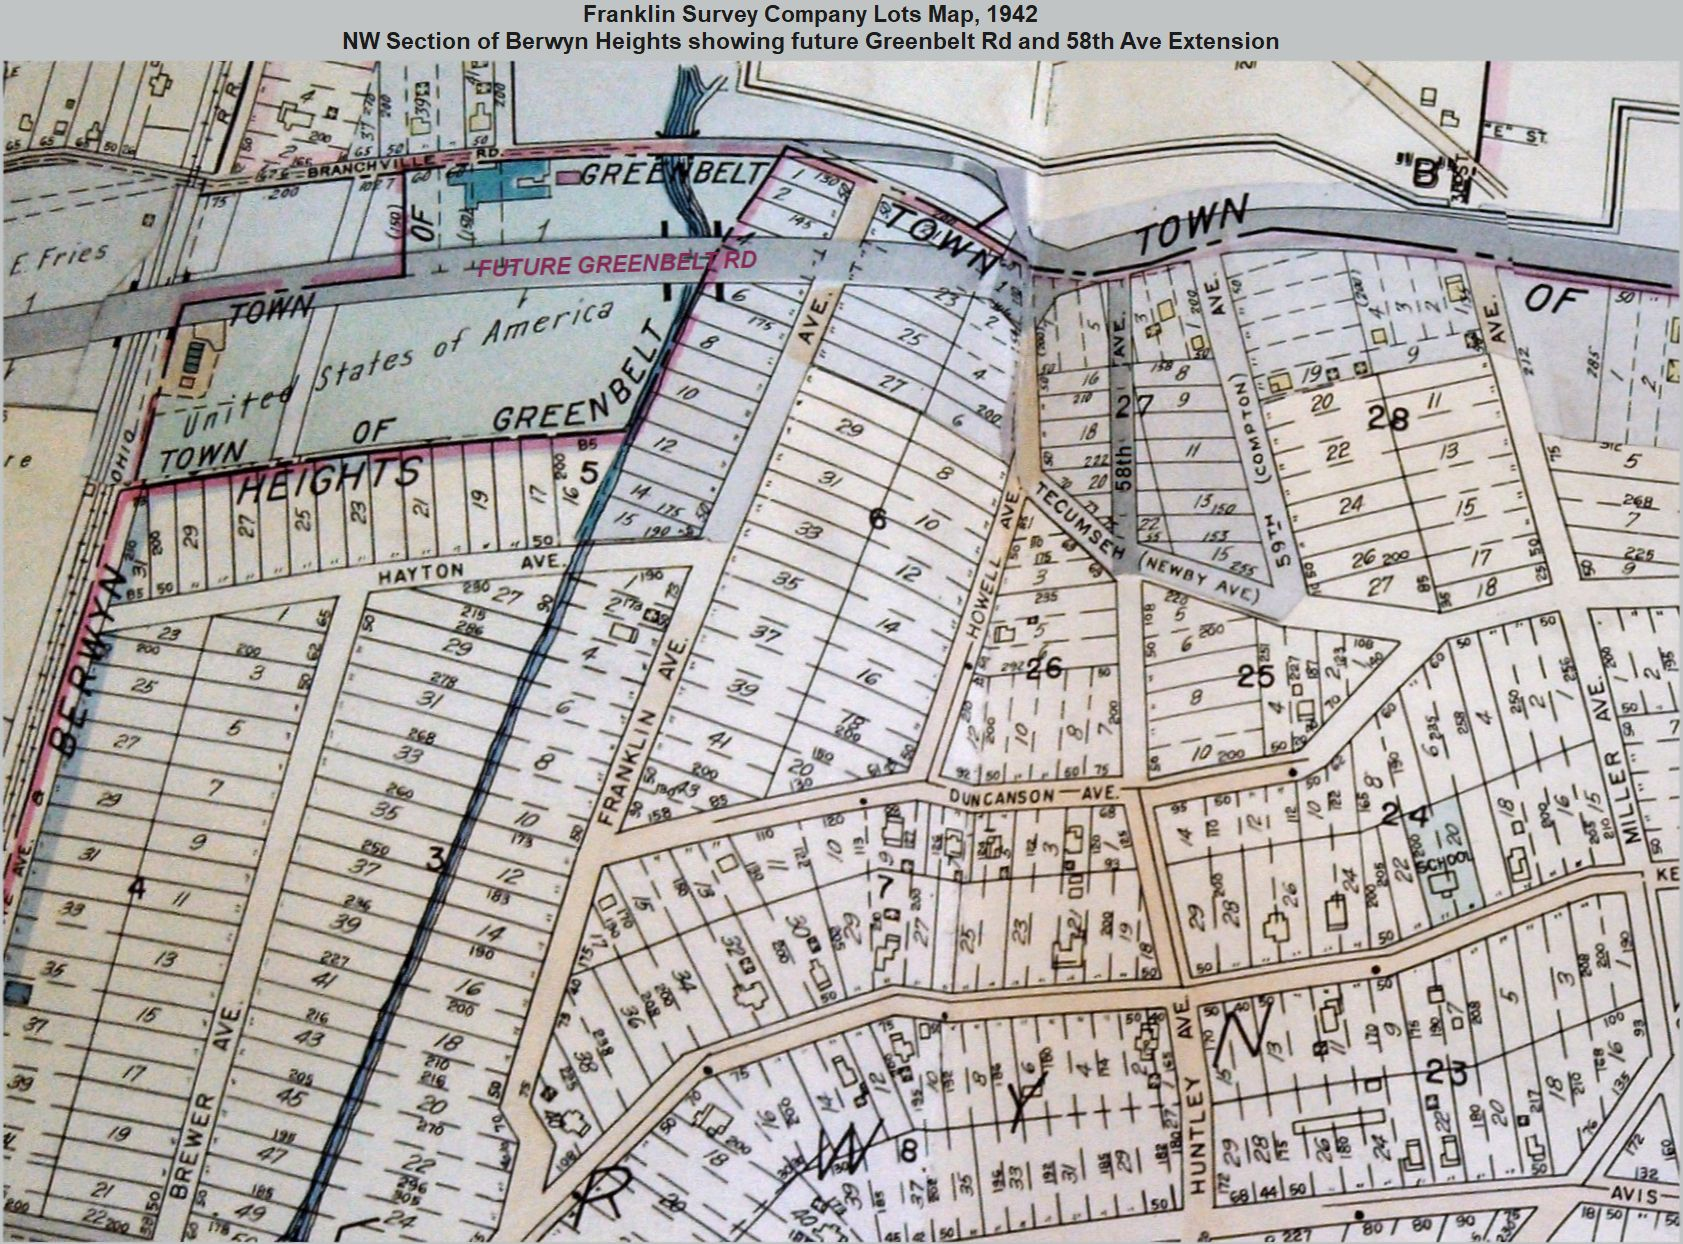 58th Ave Extension, Franklin Survey Co lots map, 1942, inscrbd